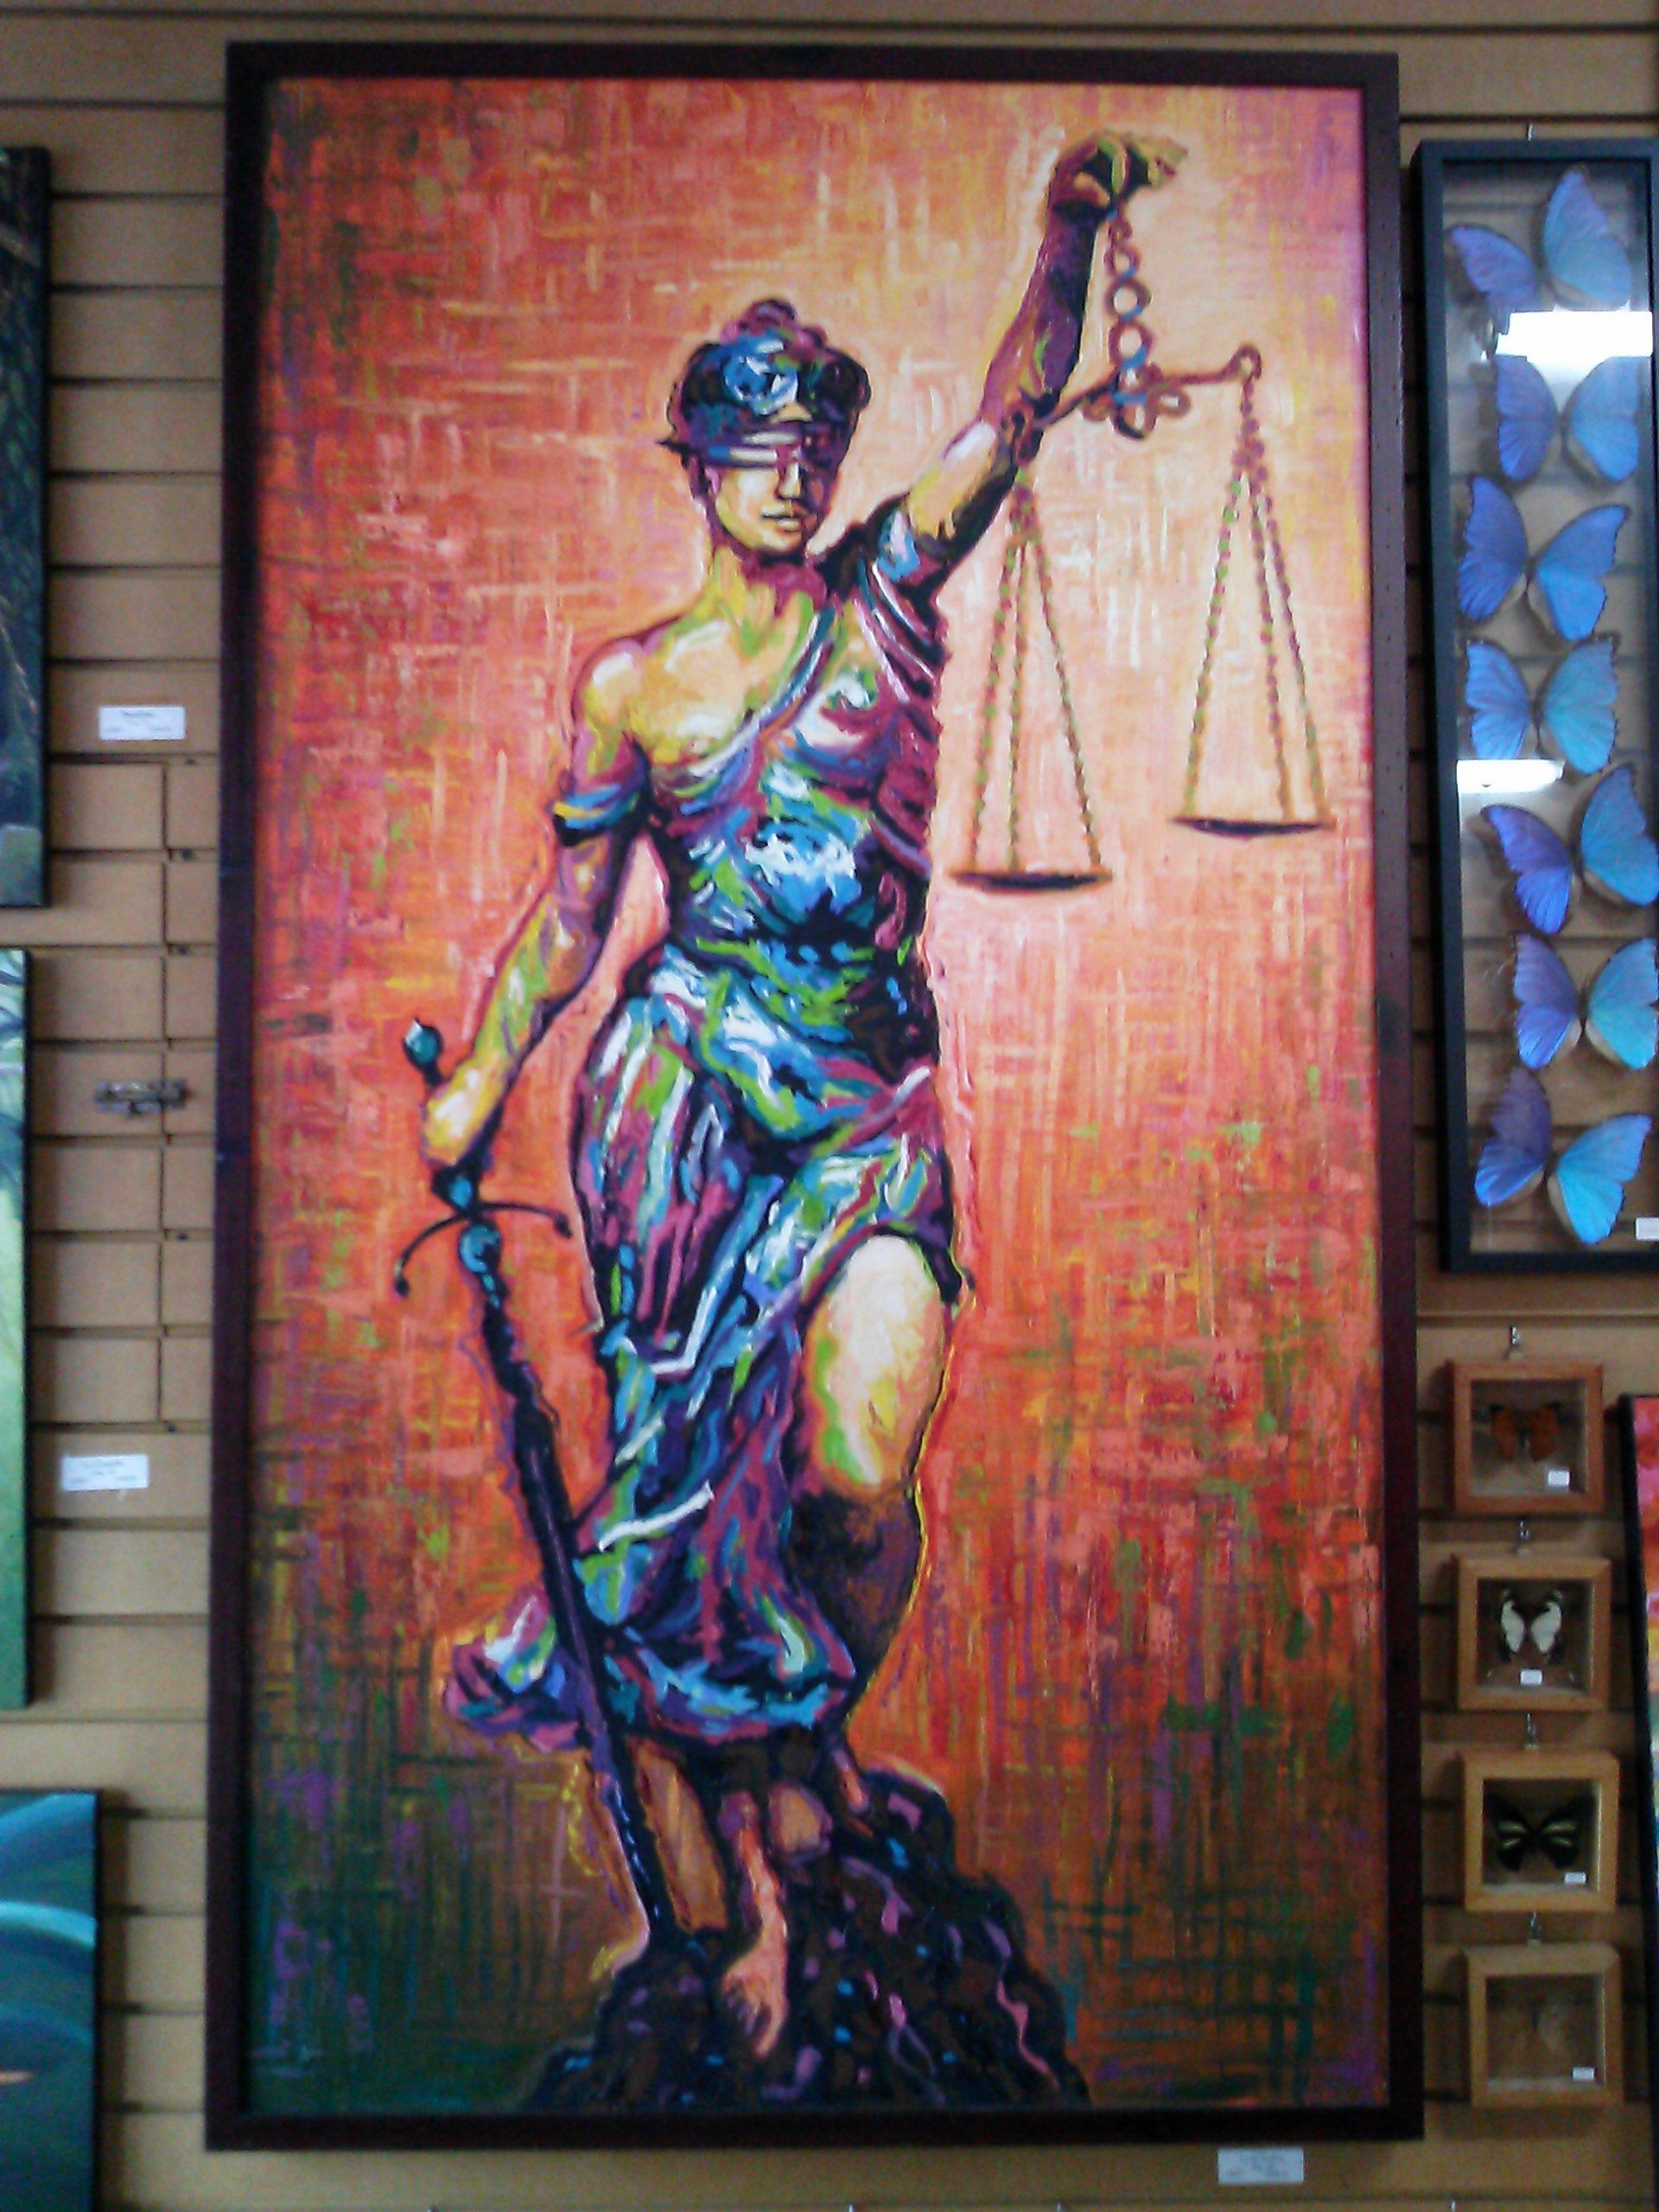 Lady justice painting google search lady justice law